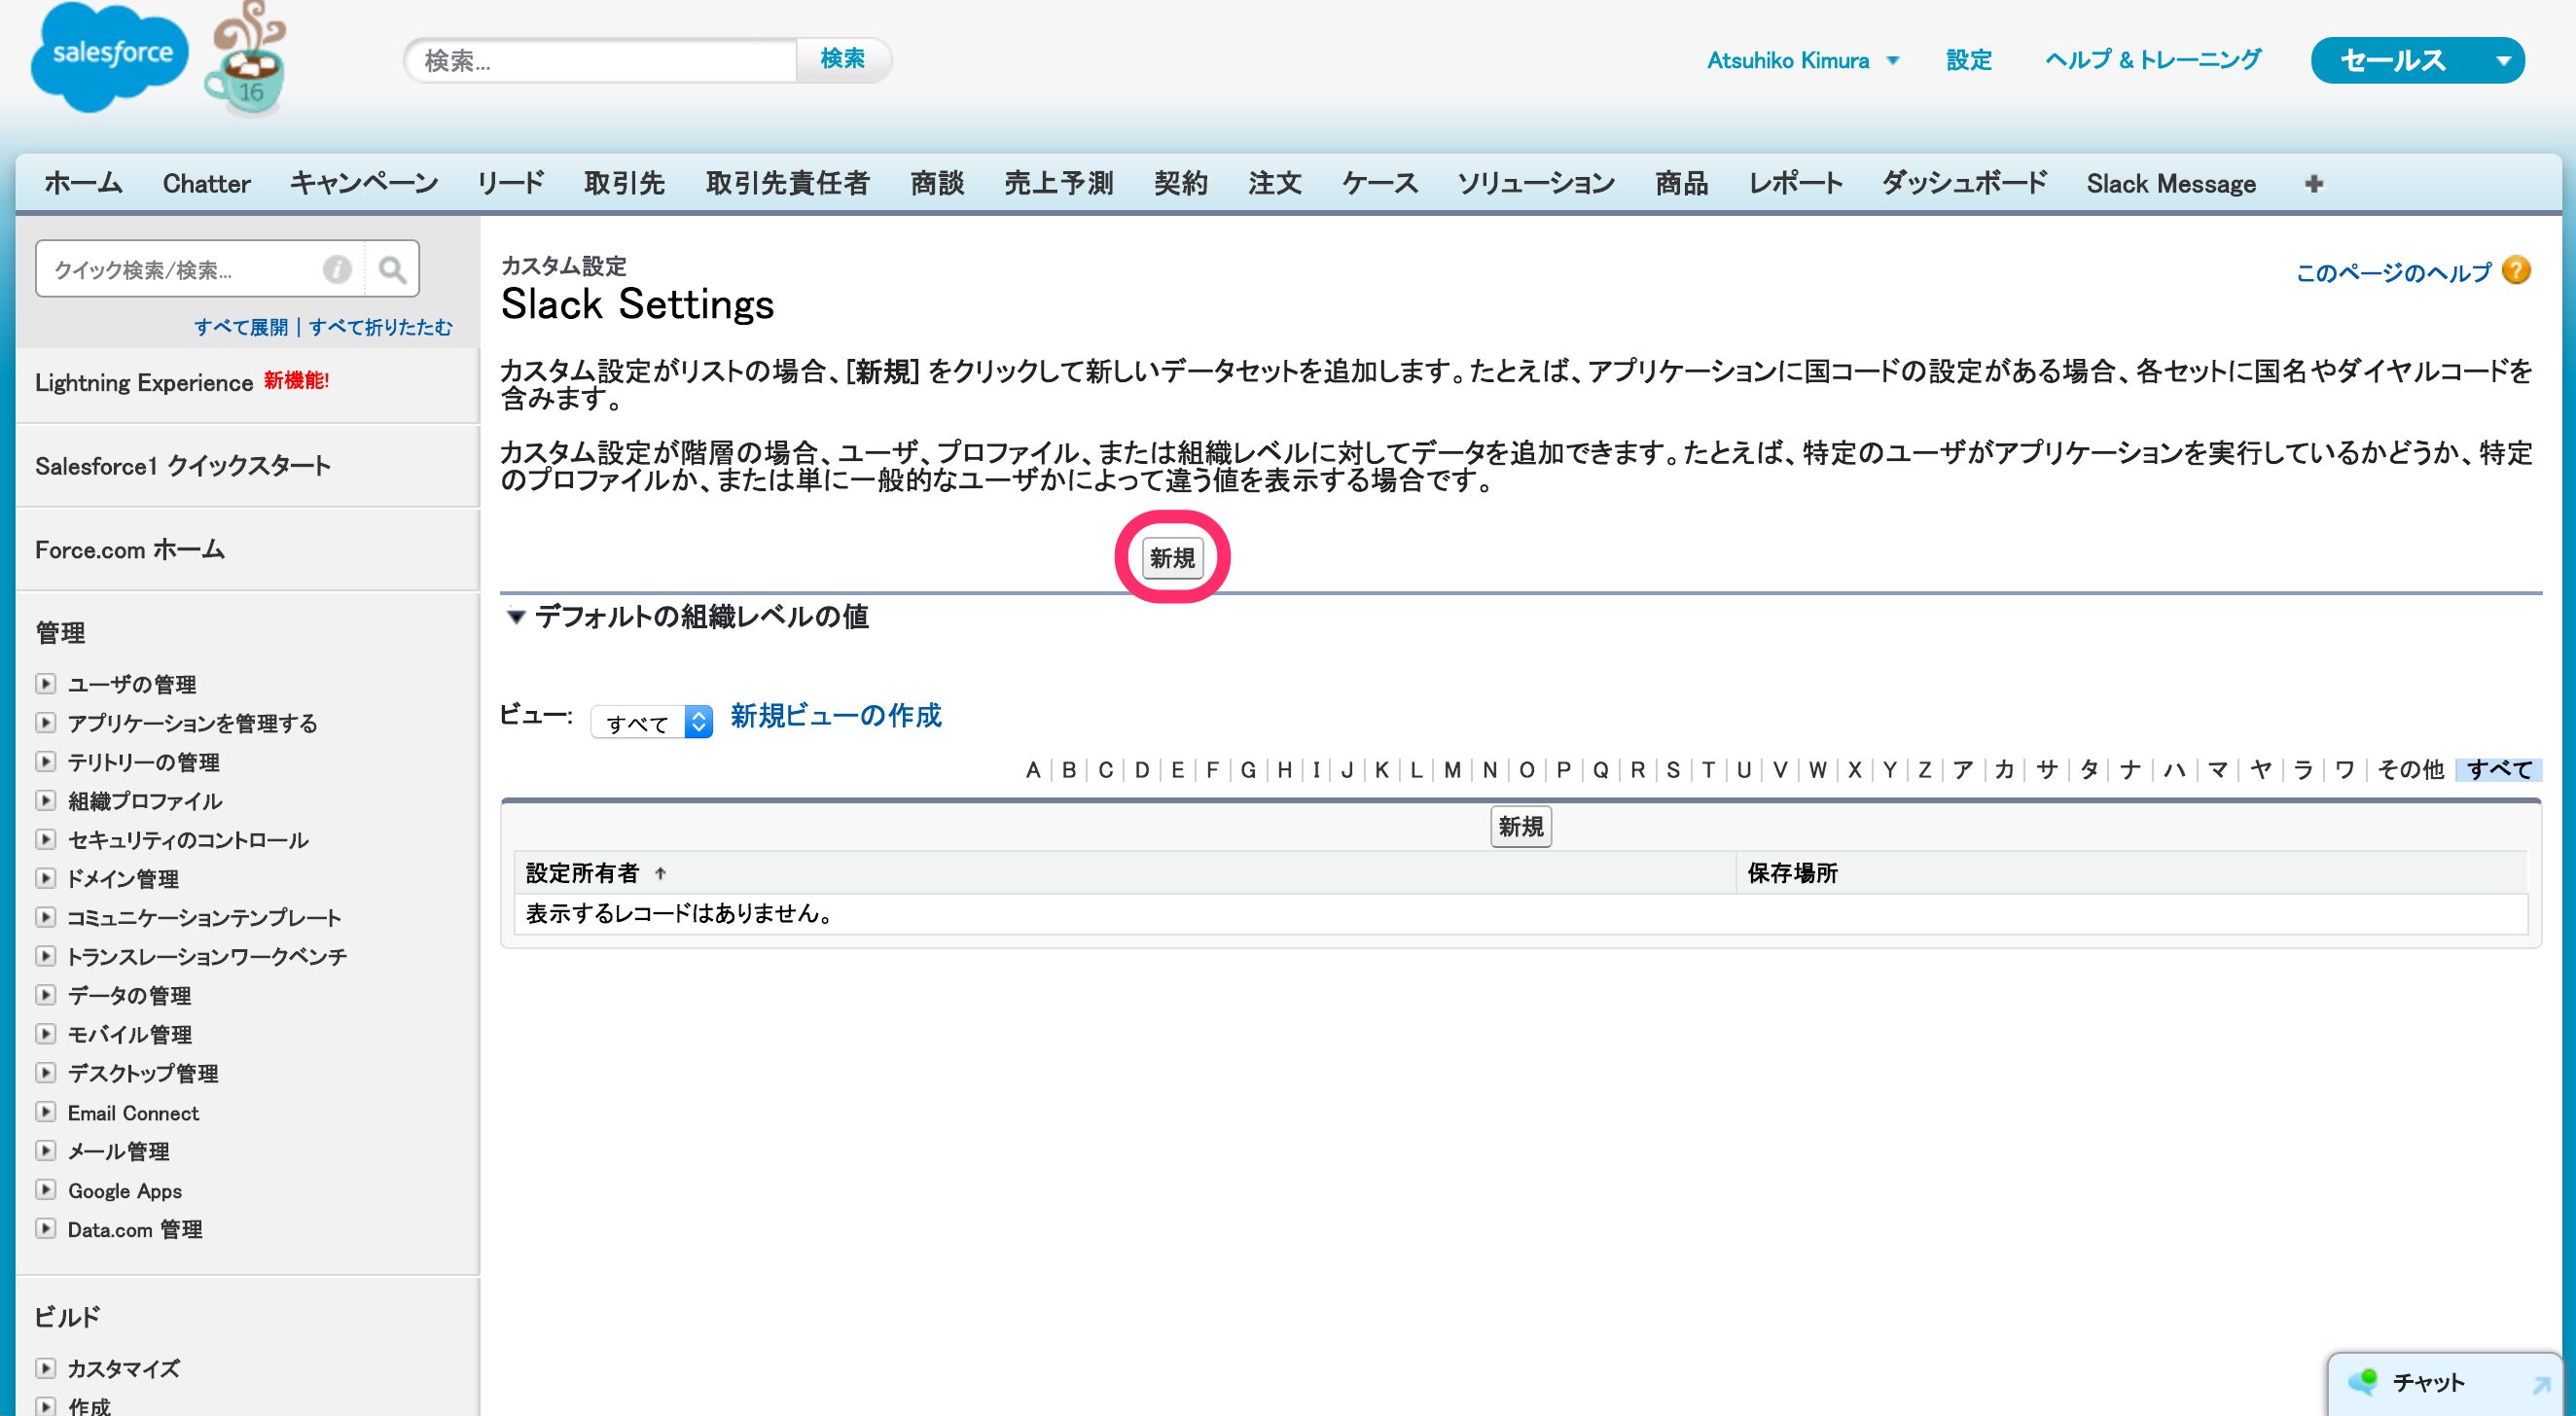 カスタム設定_Slack_Settings___Salesforce_-_Developer_Edition.png